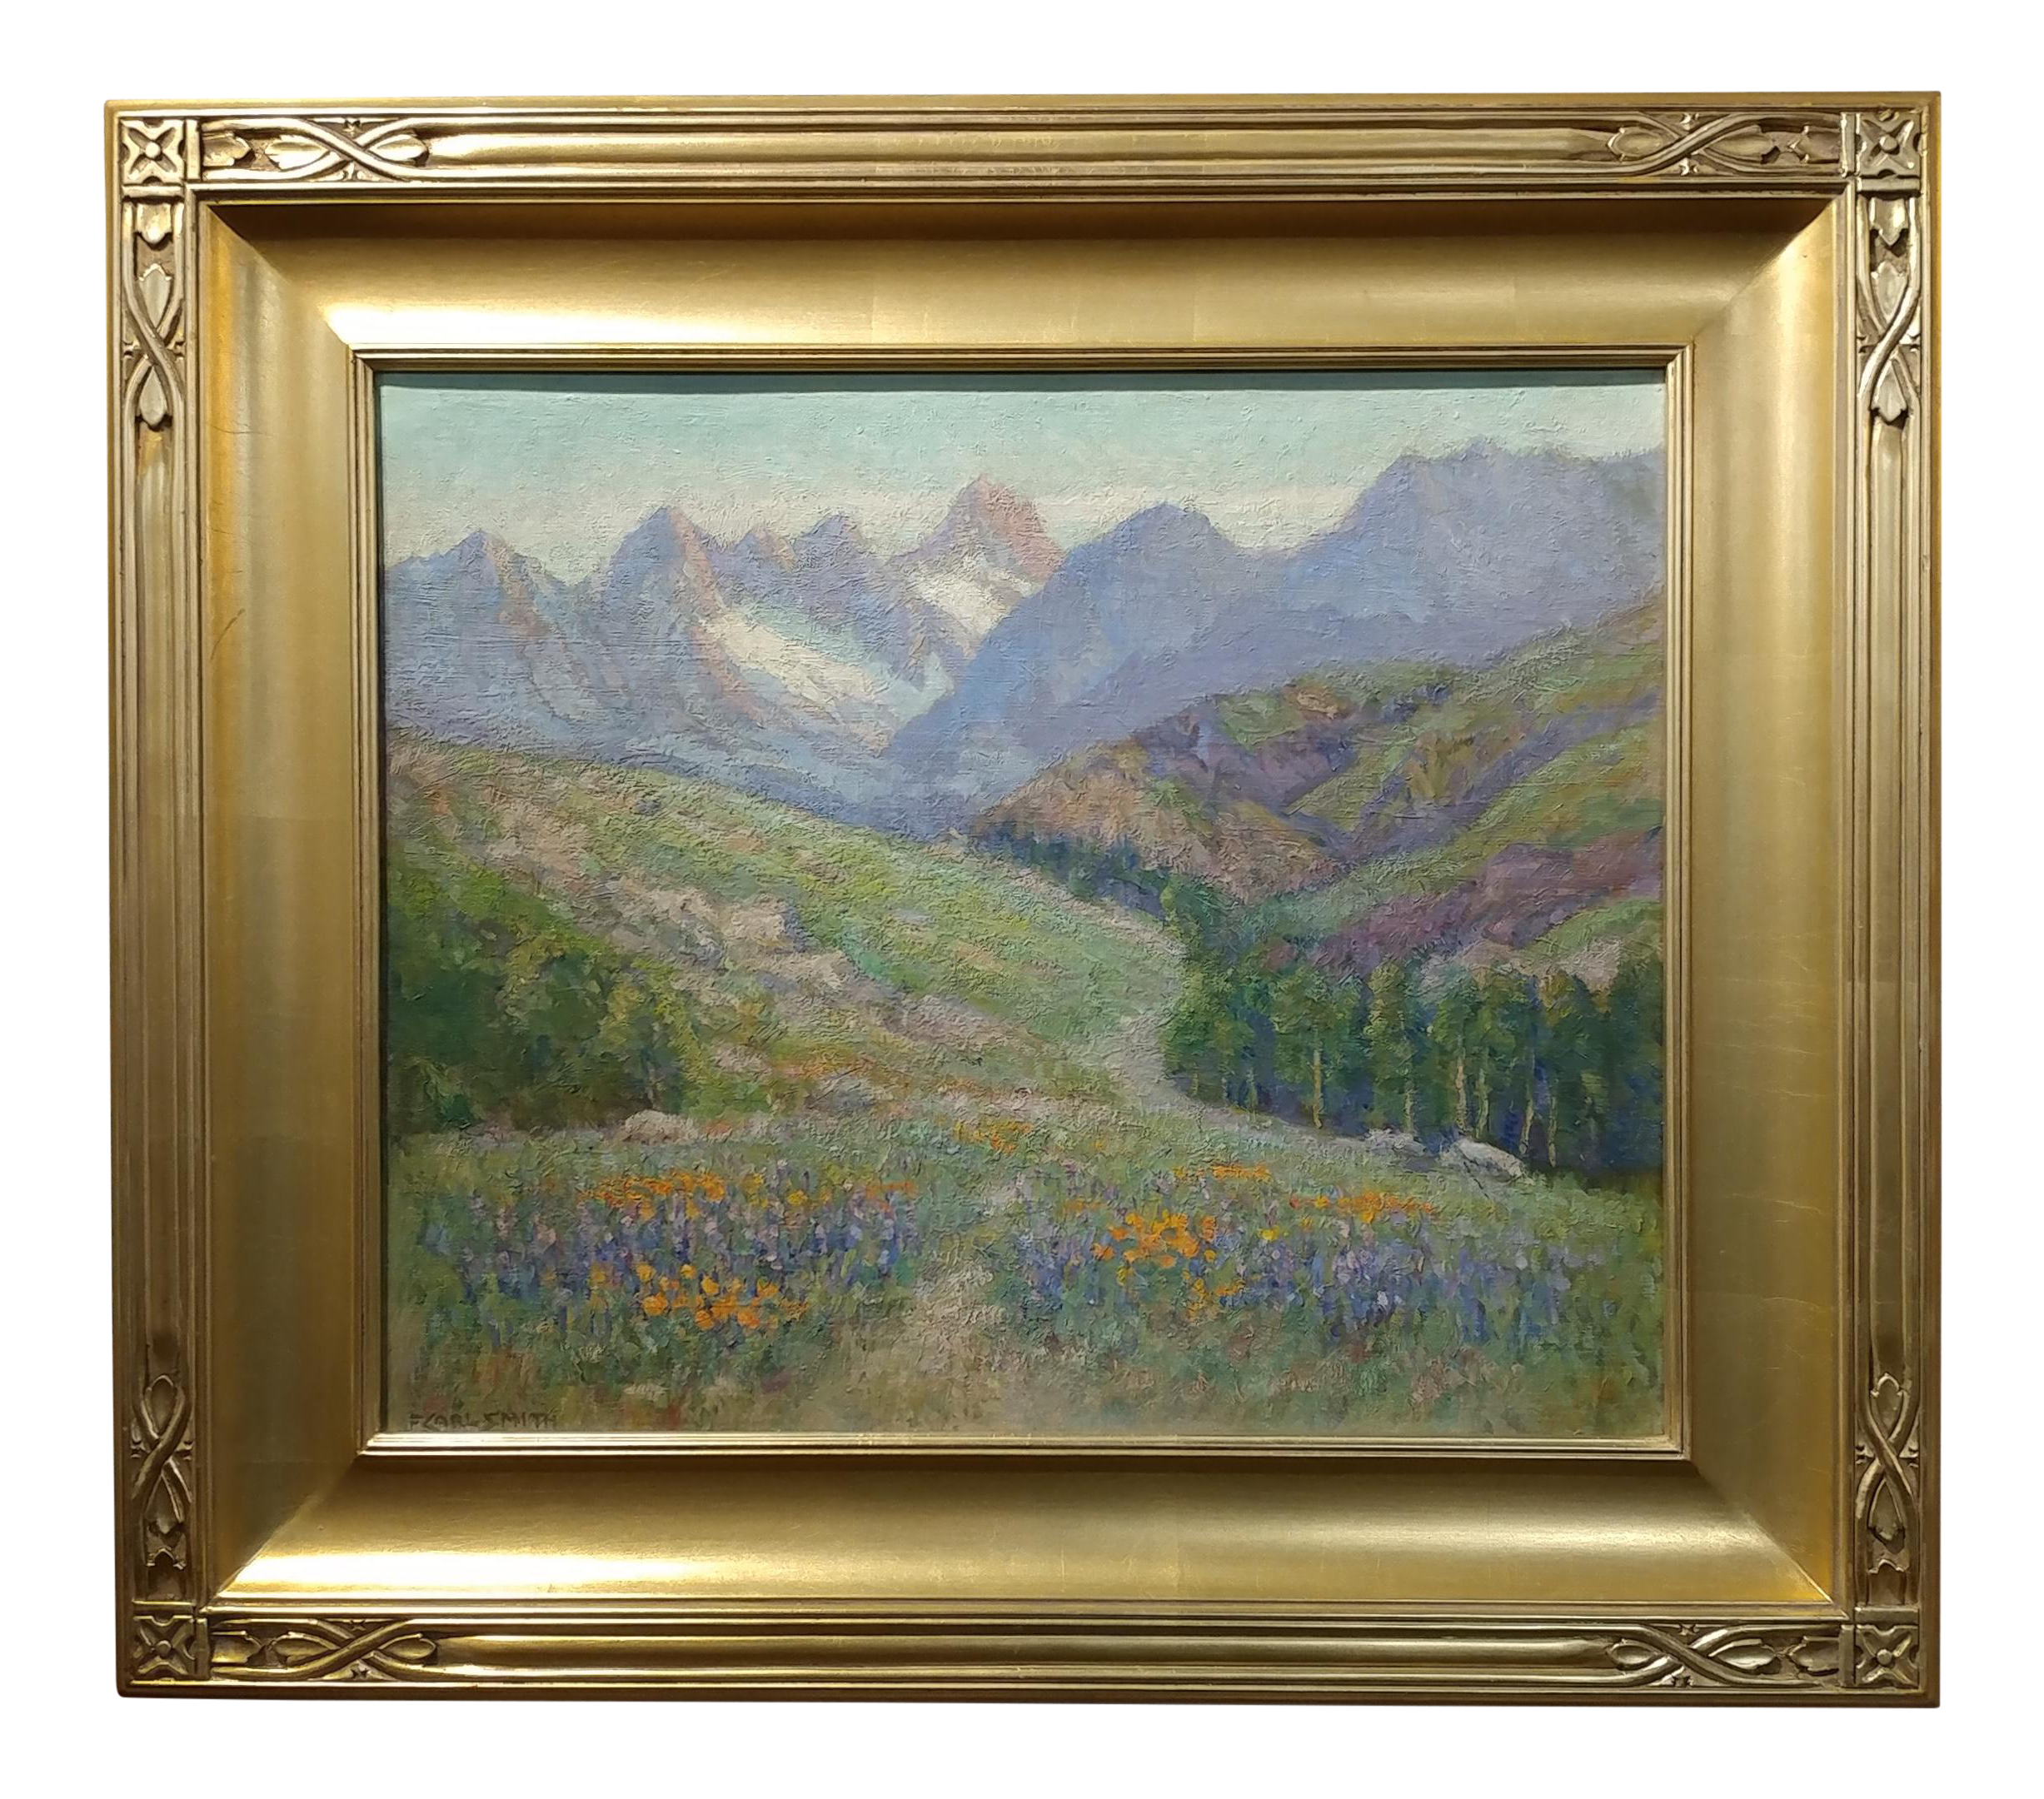 Frederick Carl Smith  California Wild Flowers Beautiful Impressionist  Landscape Oil Painting C1930s Oil